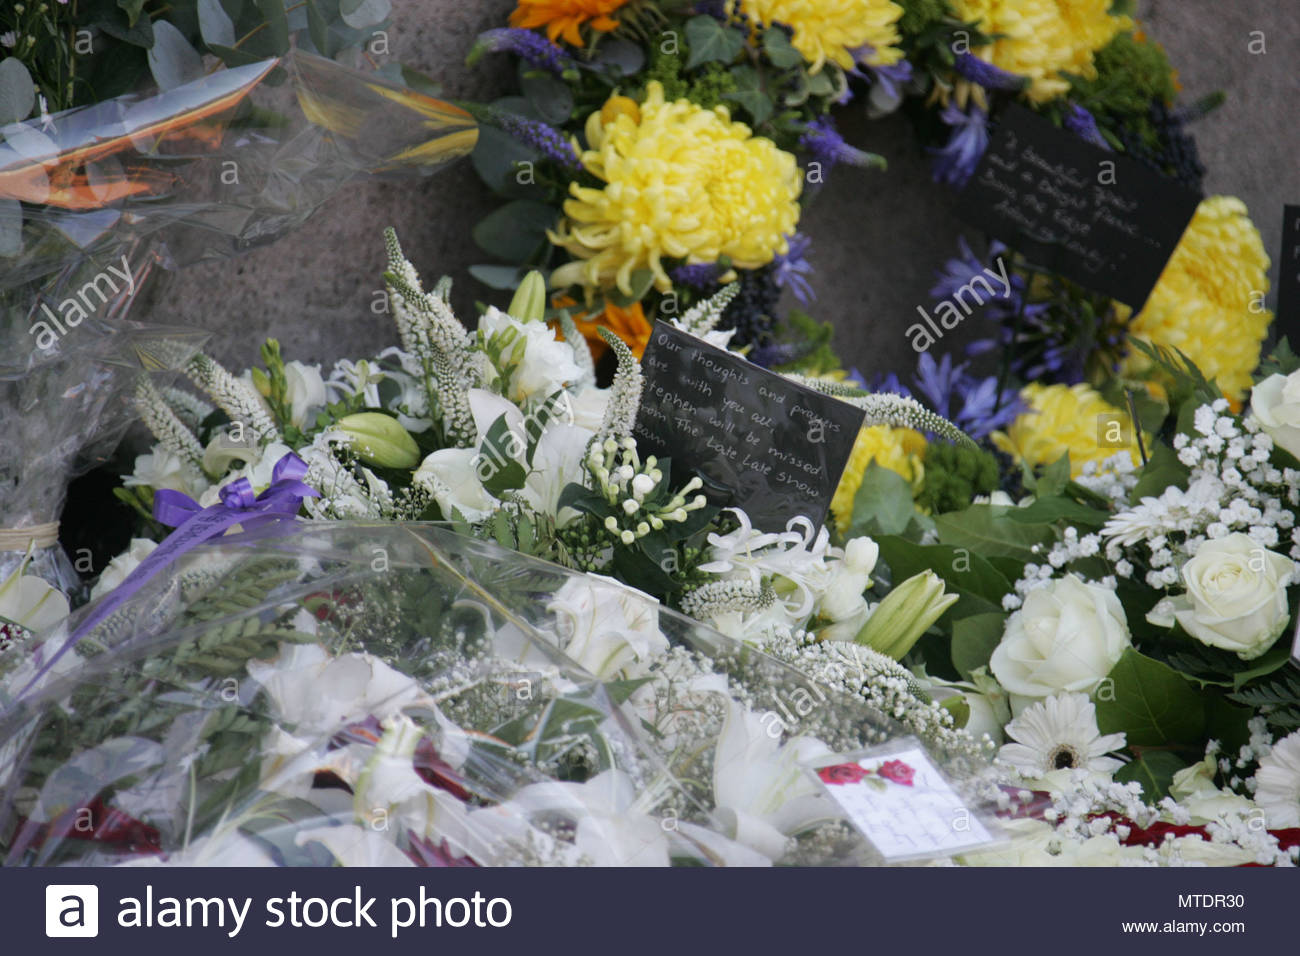 The burial of stephen gately in dublin ireland on saturday 171009 the burial of stephen gately in dublin ireland on saturday 171009 he was cremated at glasnevin cemetery afterwards westlife were among the mourners izmirmasajfo